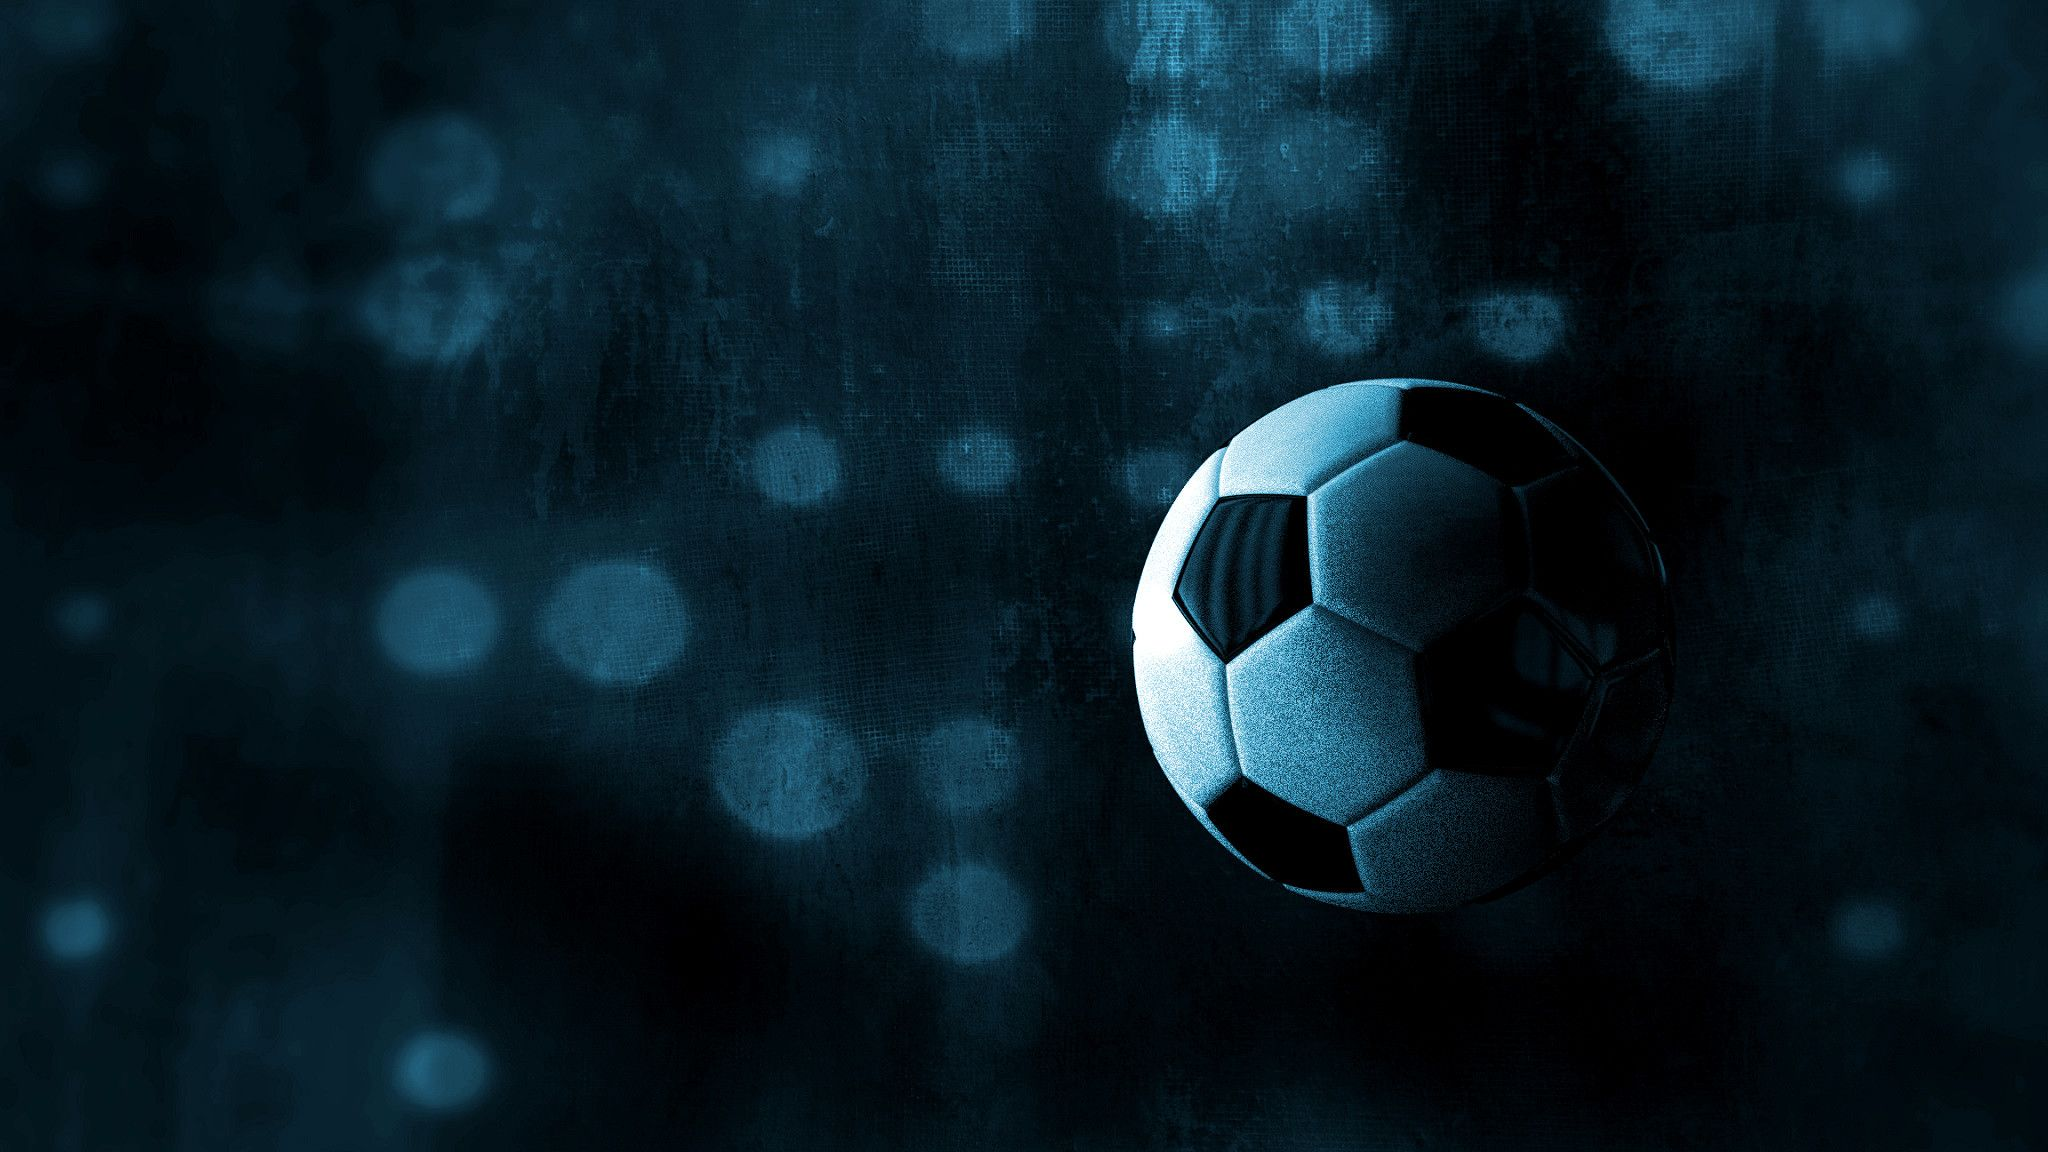 Dark soccer - Barbaras HD Wallpapers